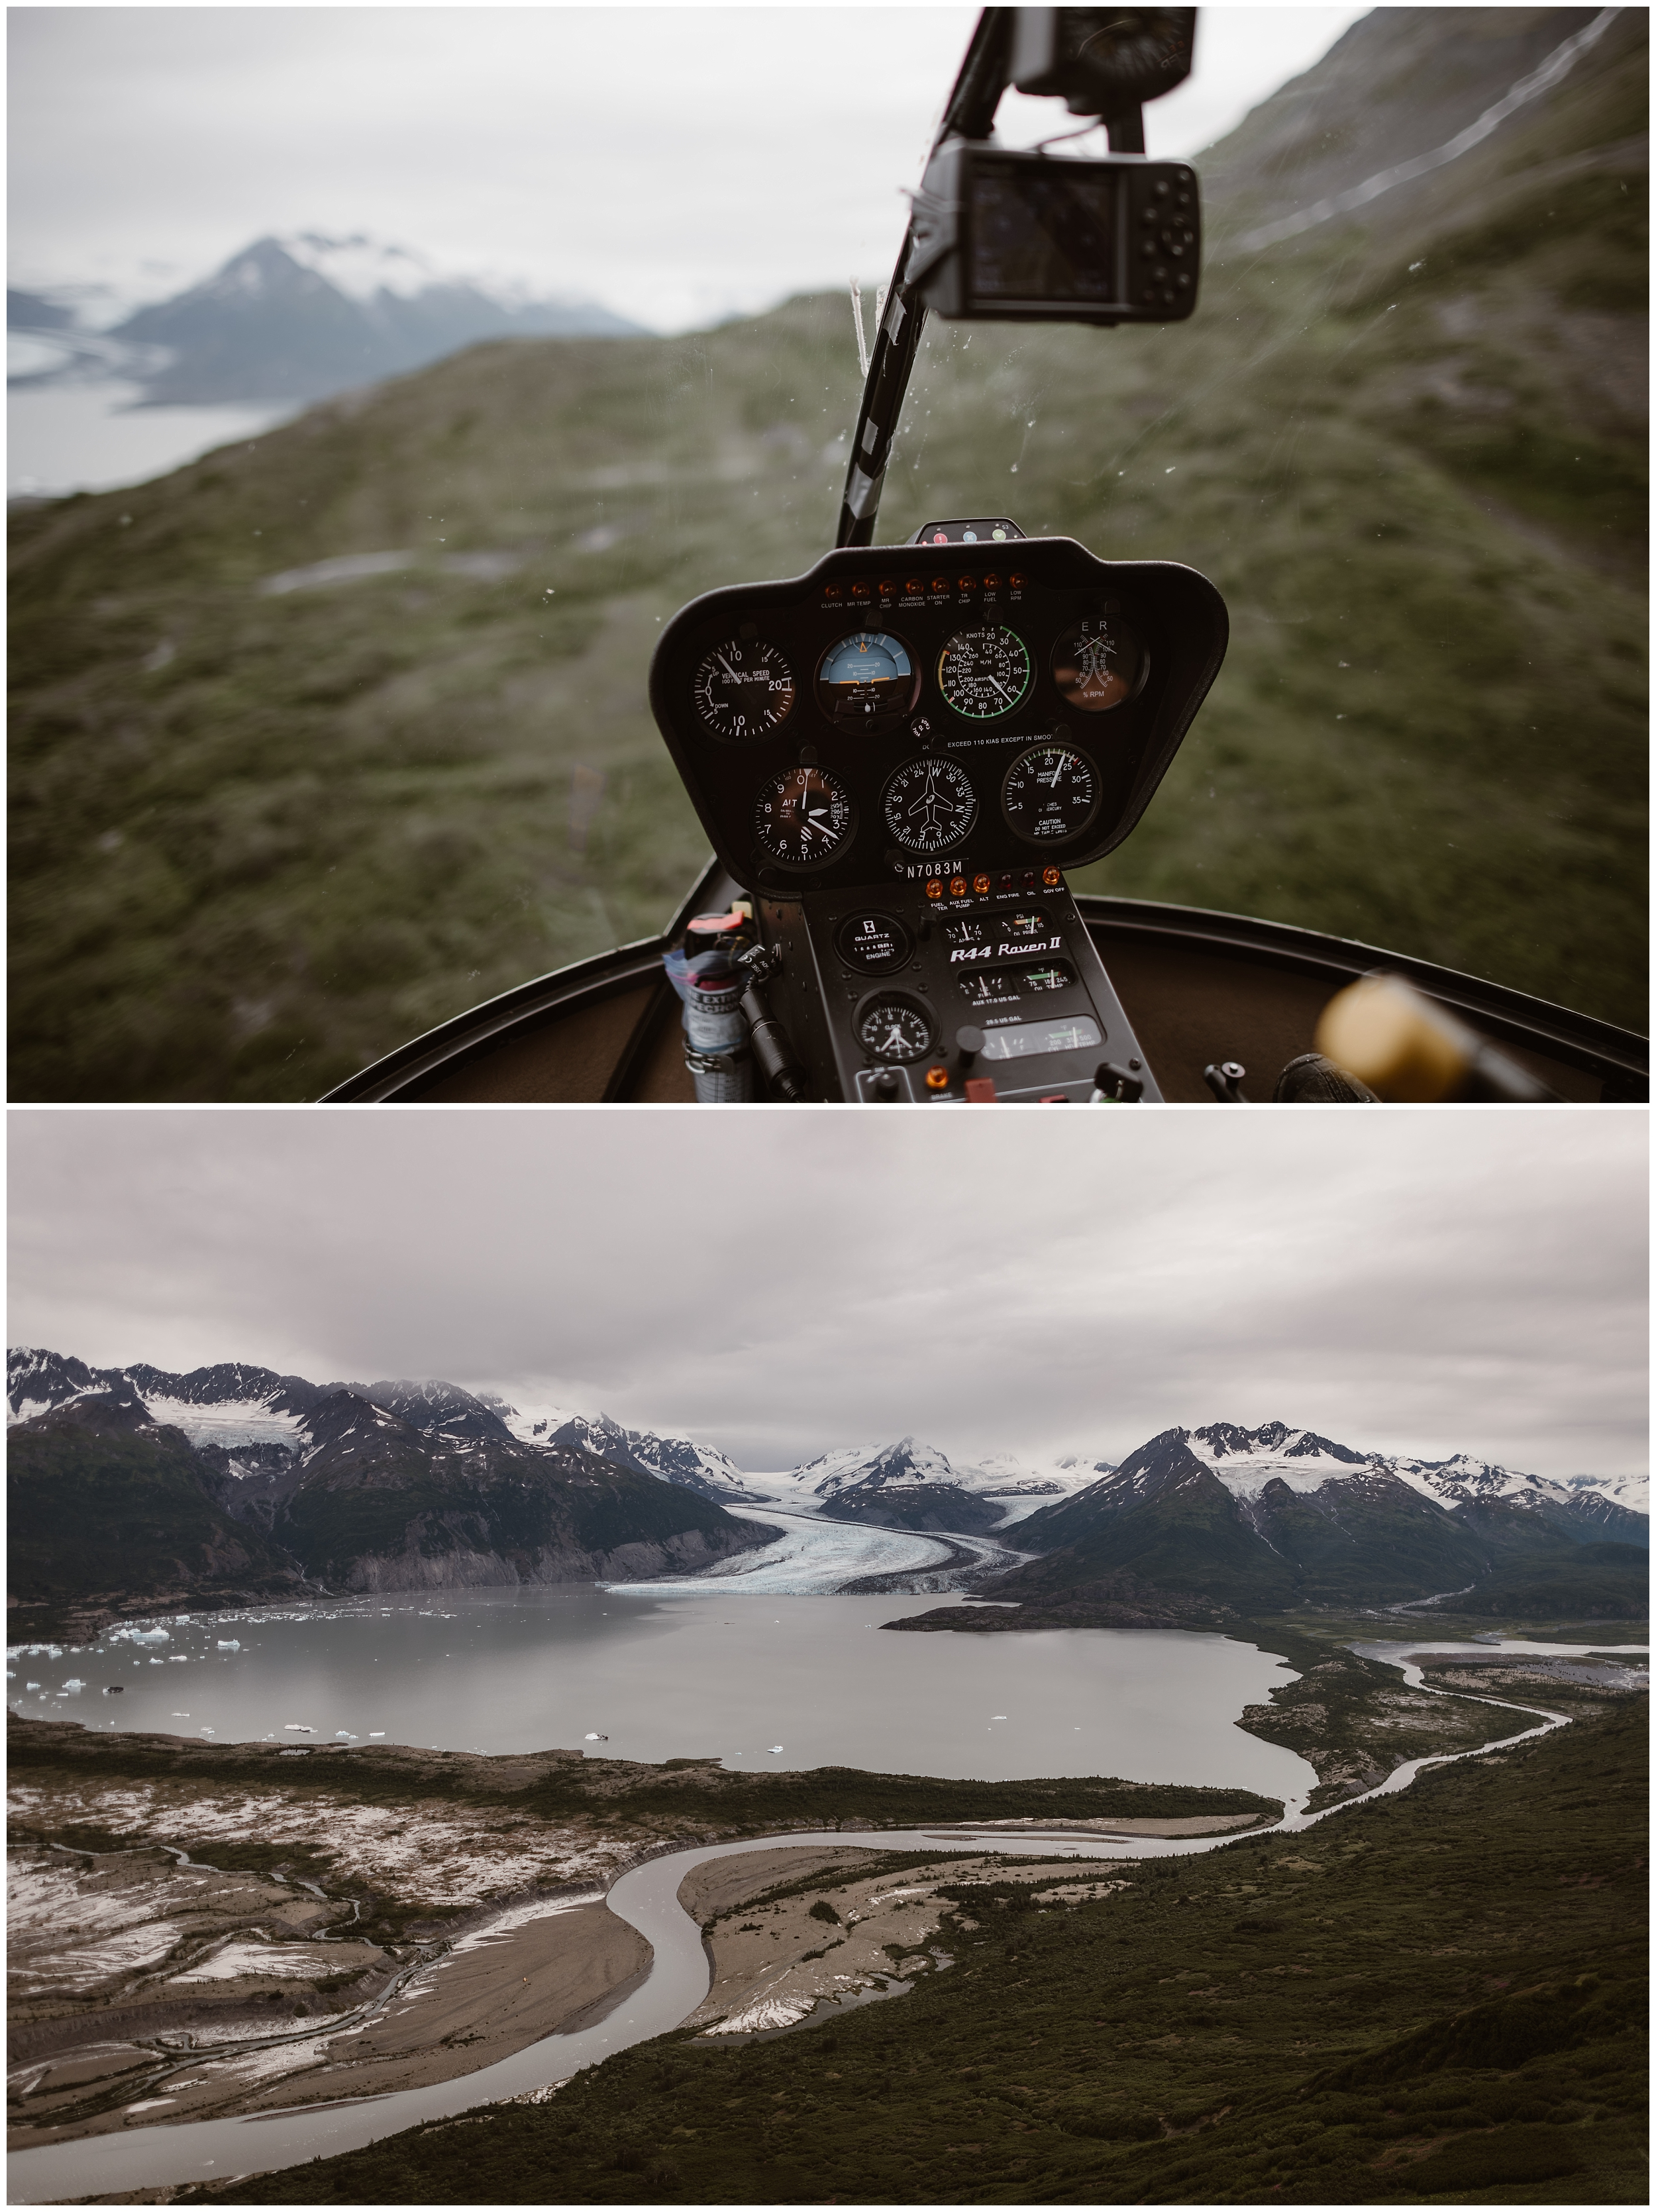 In these two collaged elopement photos, the beauty of Alaska is shown. In the top photo, you peer through the front window of the helicopter as it flies above green hills and toward a snowy mountain peak. In the bottom photo, taken by Alaskan wedding photographer Adventure Instead, a birds-eye-view of a glacial lake is shown with a few snow-capped mountains in the background.